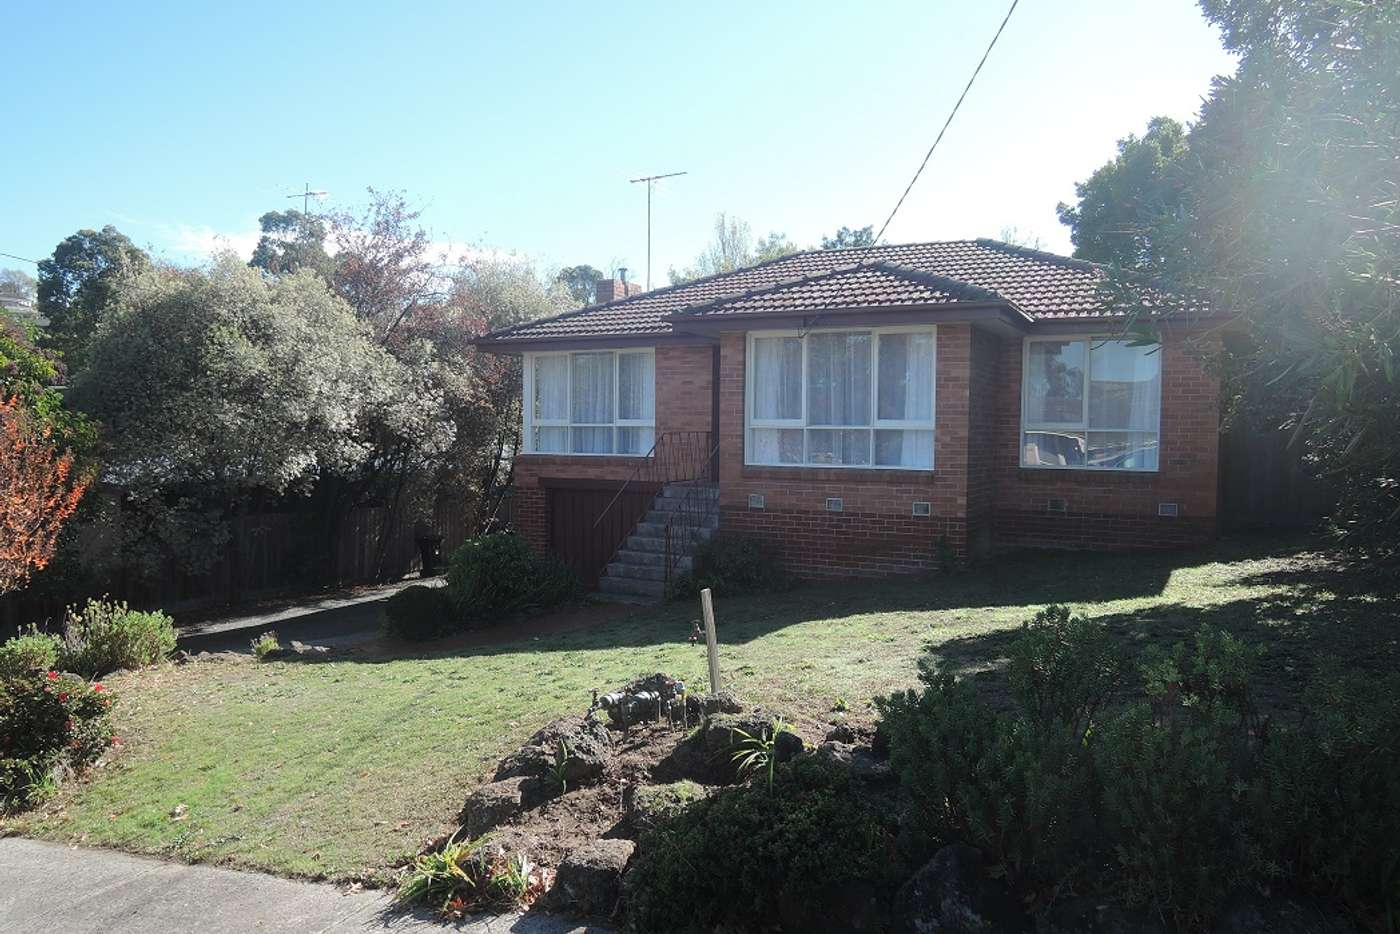 Main view of Homely unit listing, 1/7 Norma Street, Doncaster VIC 3108